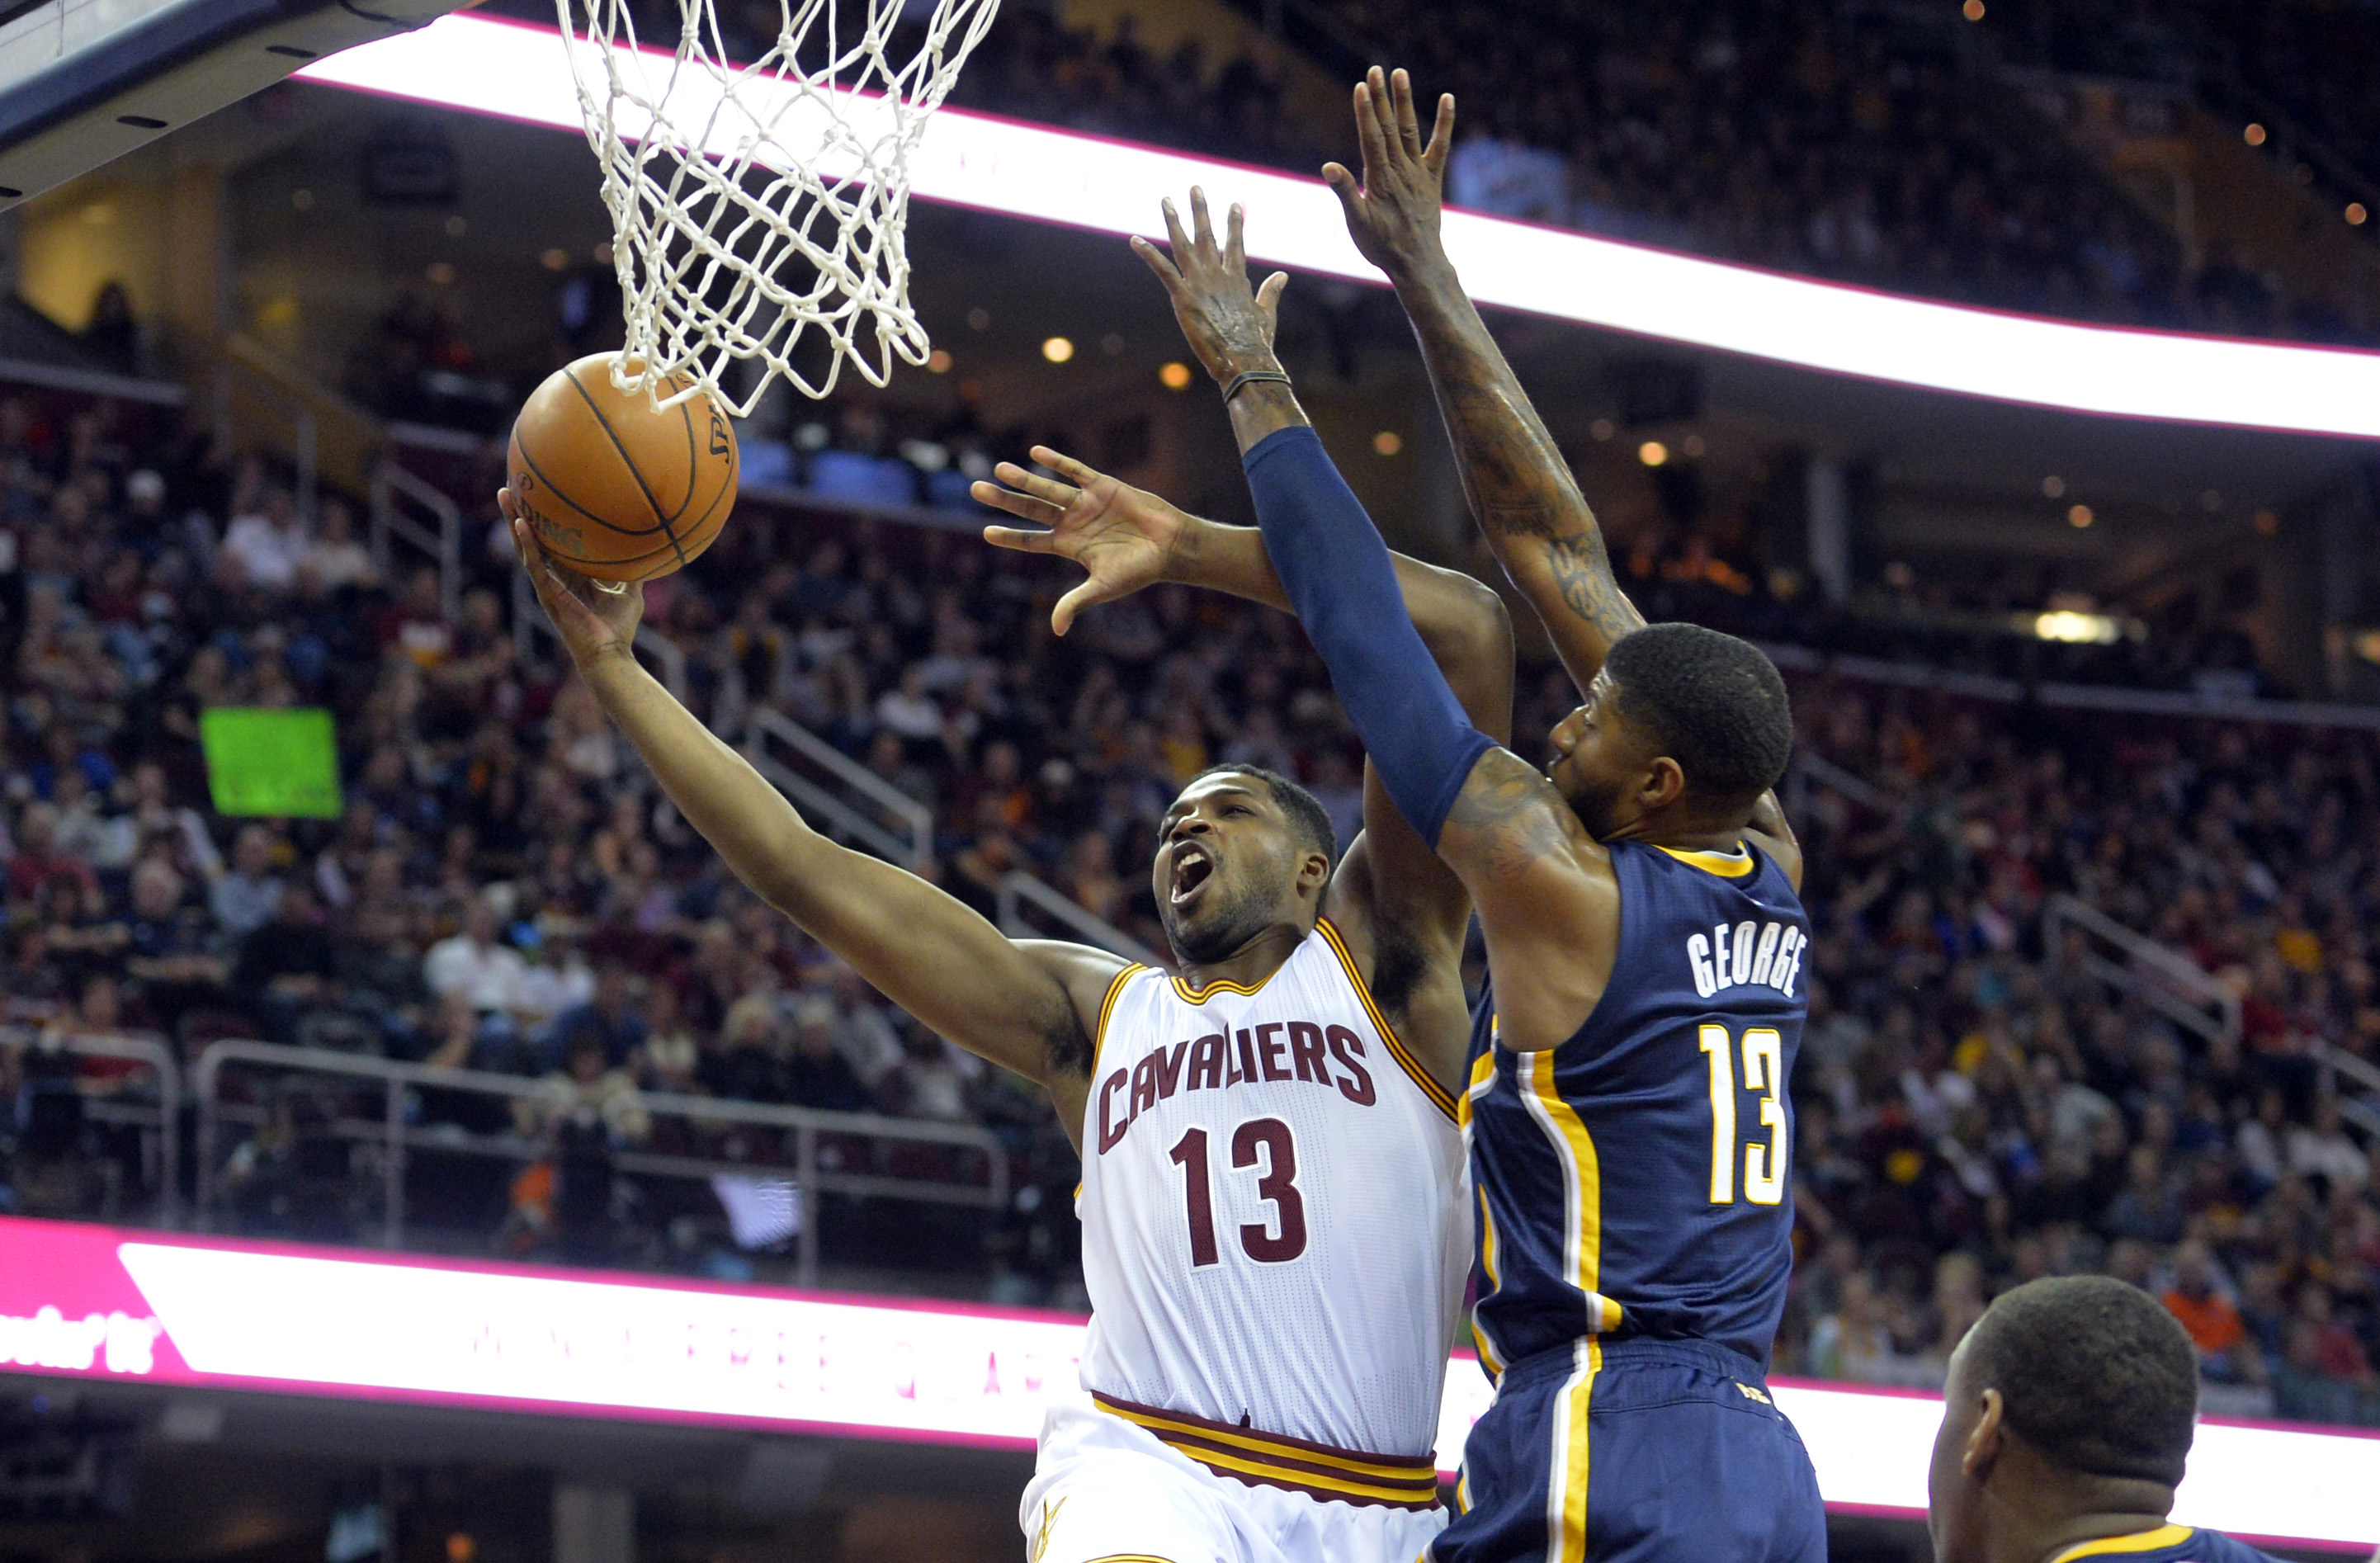 8912192-nba-indiana-pacers-at-cleveland-cavaliers